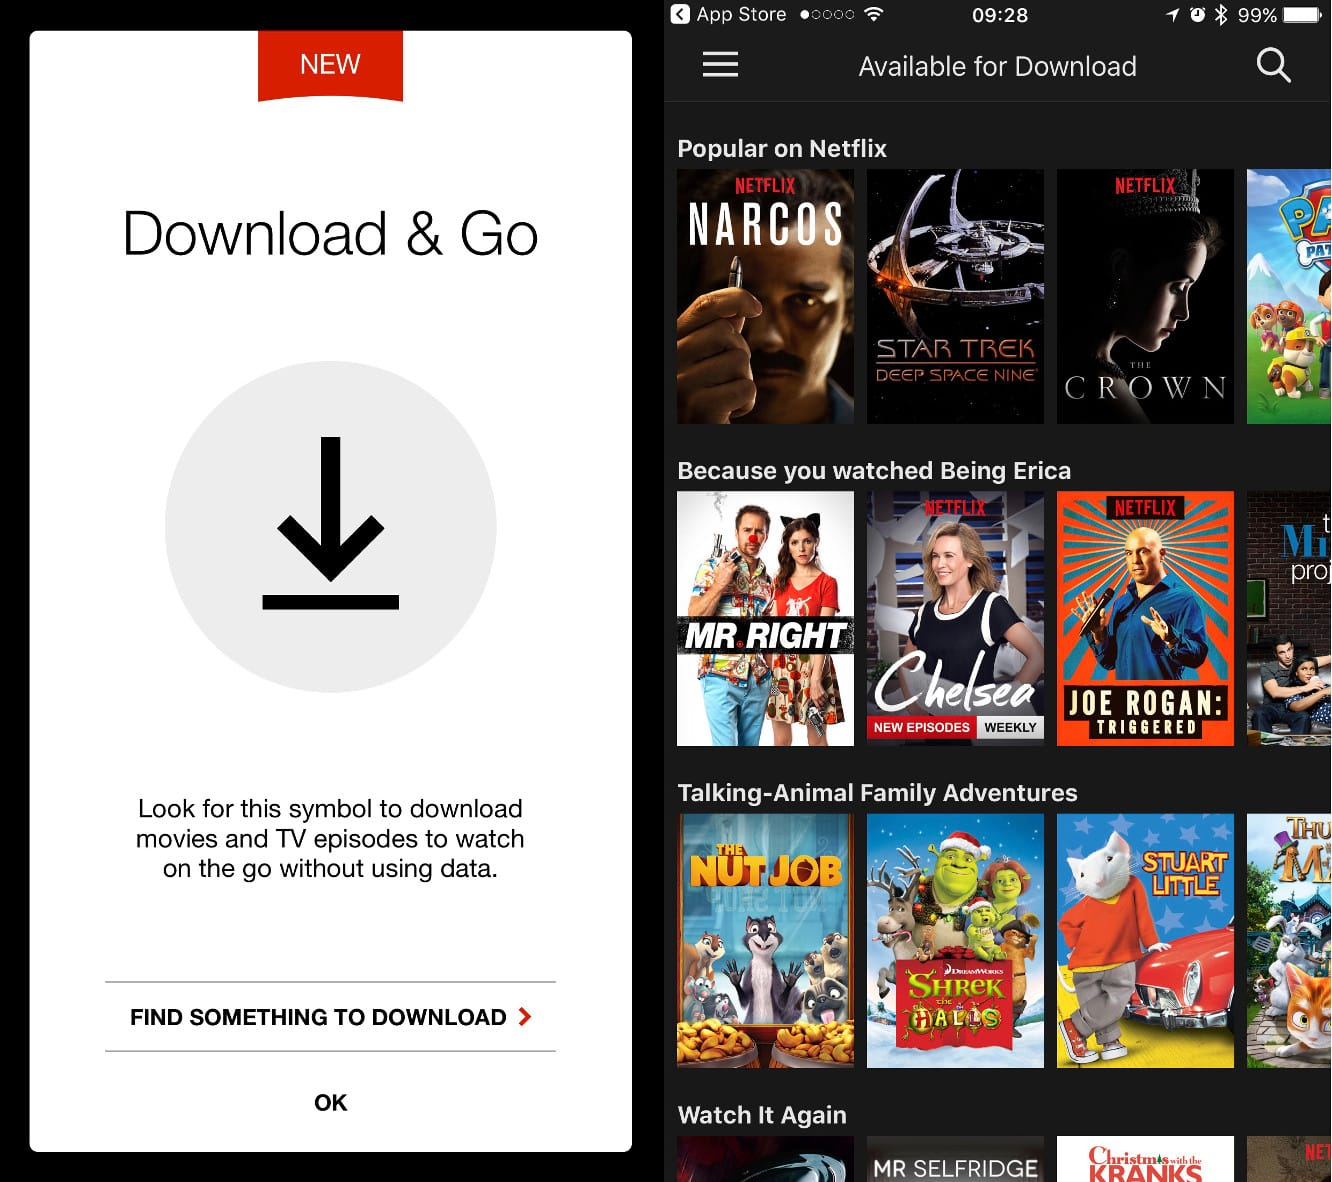 Netflix enables offline viewing for some shows and movies on its iOS app